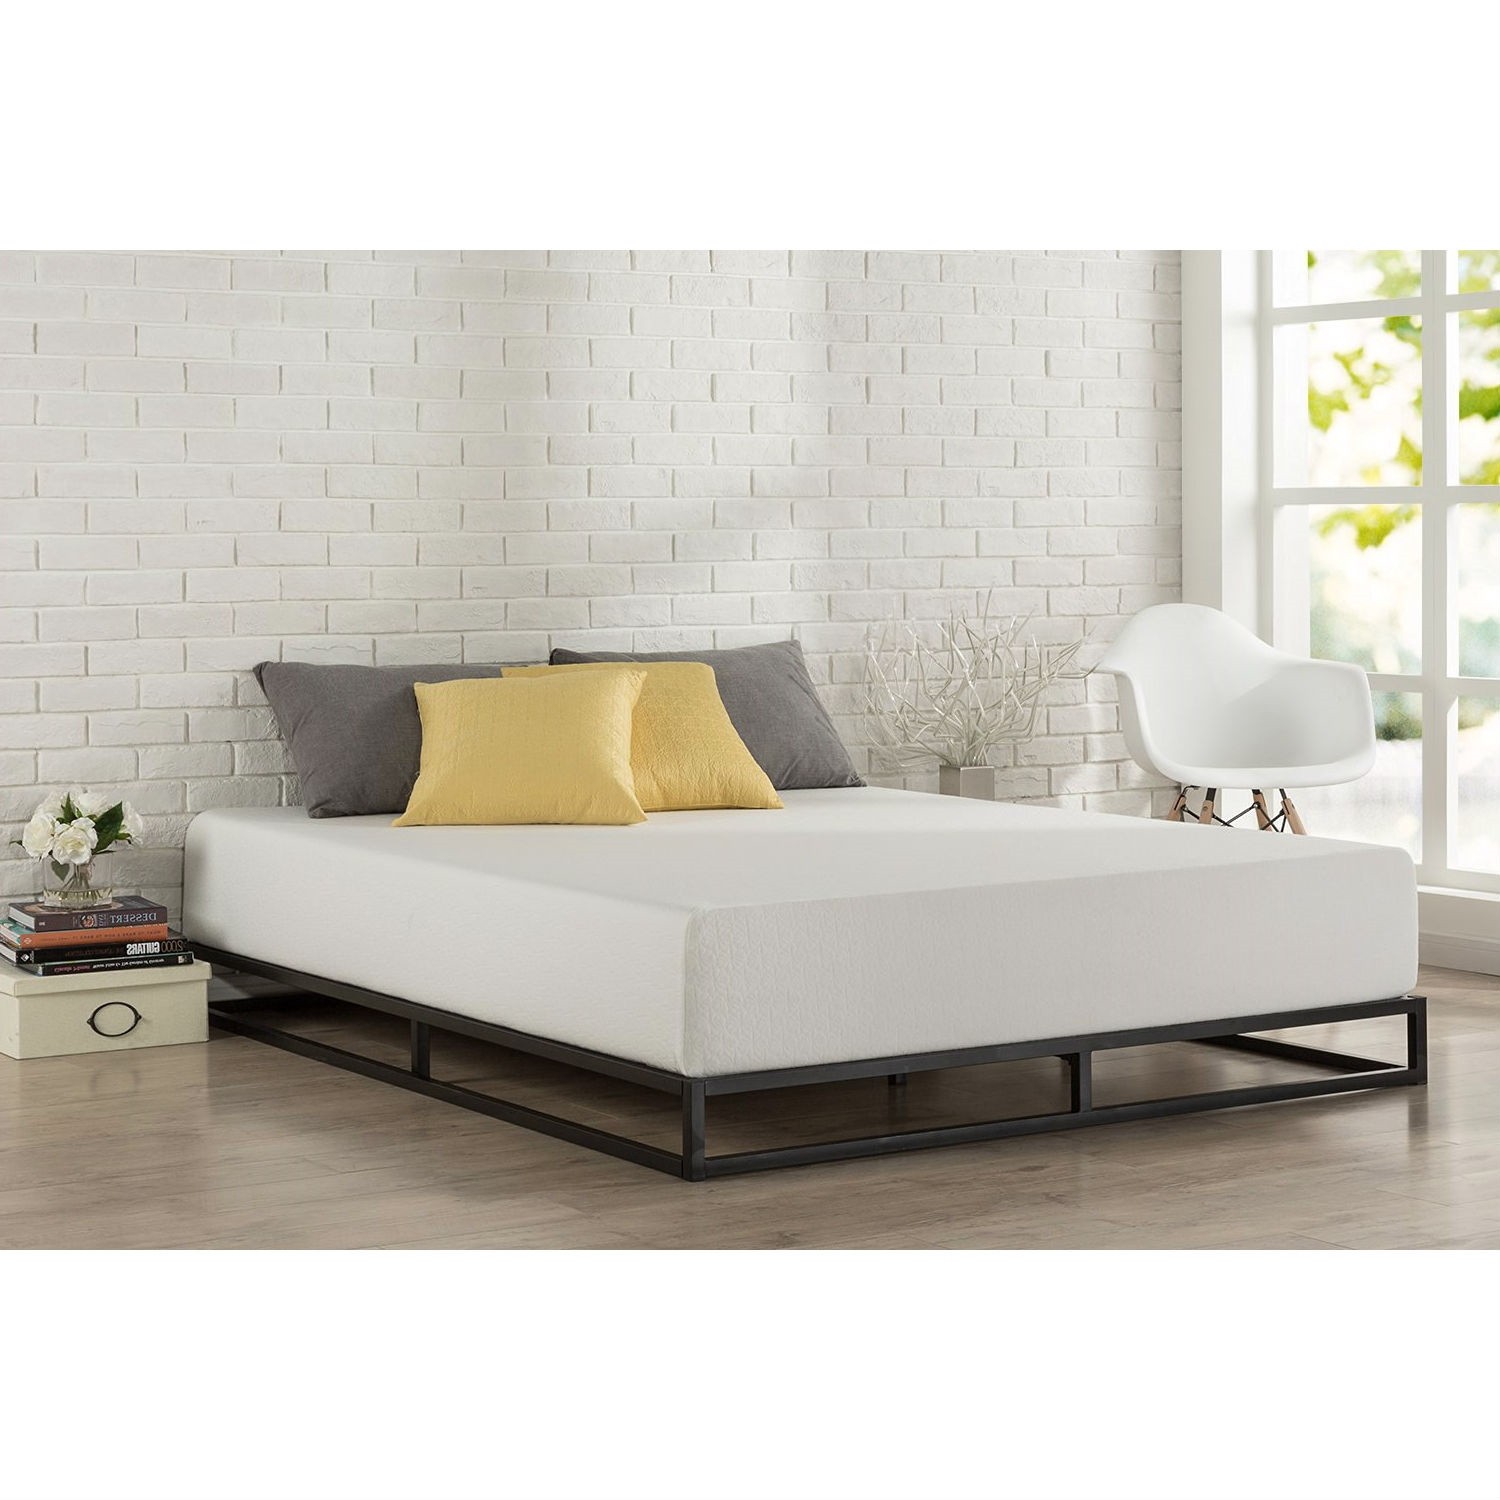 Queen size 6inch Low Profile Metal Platform Bed Frame with Wooden